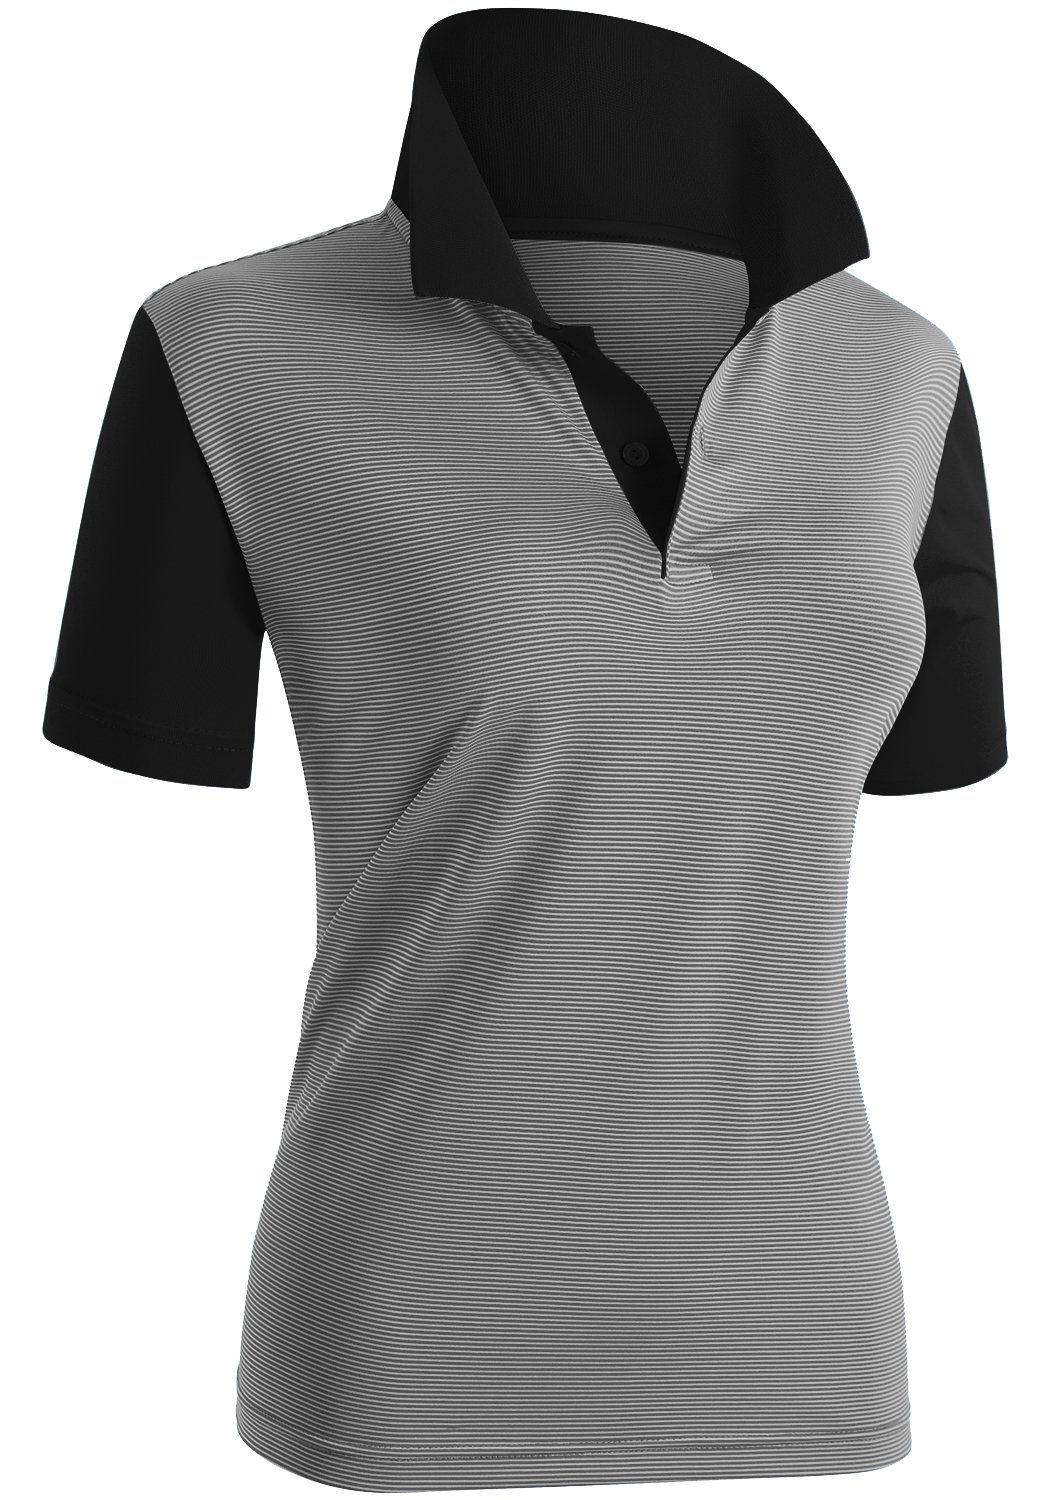 CLOVERY Women's Casual Basic Short Sleeve Basic Polo Shirts Black US L/Tag L by CLOVERY